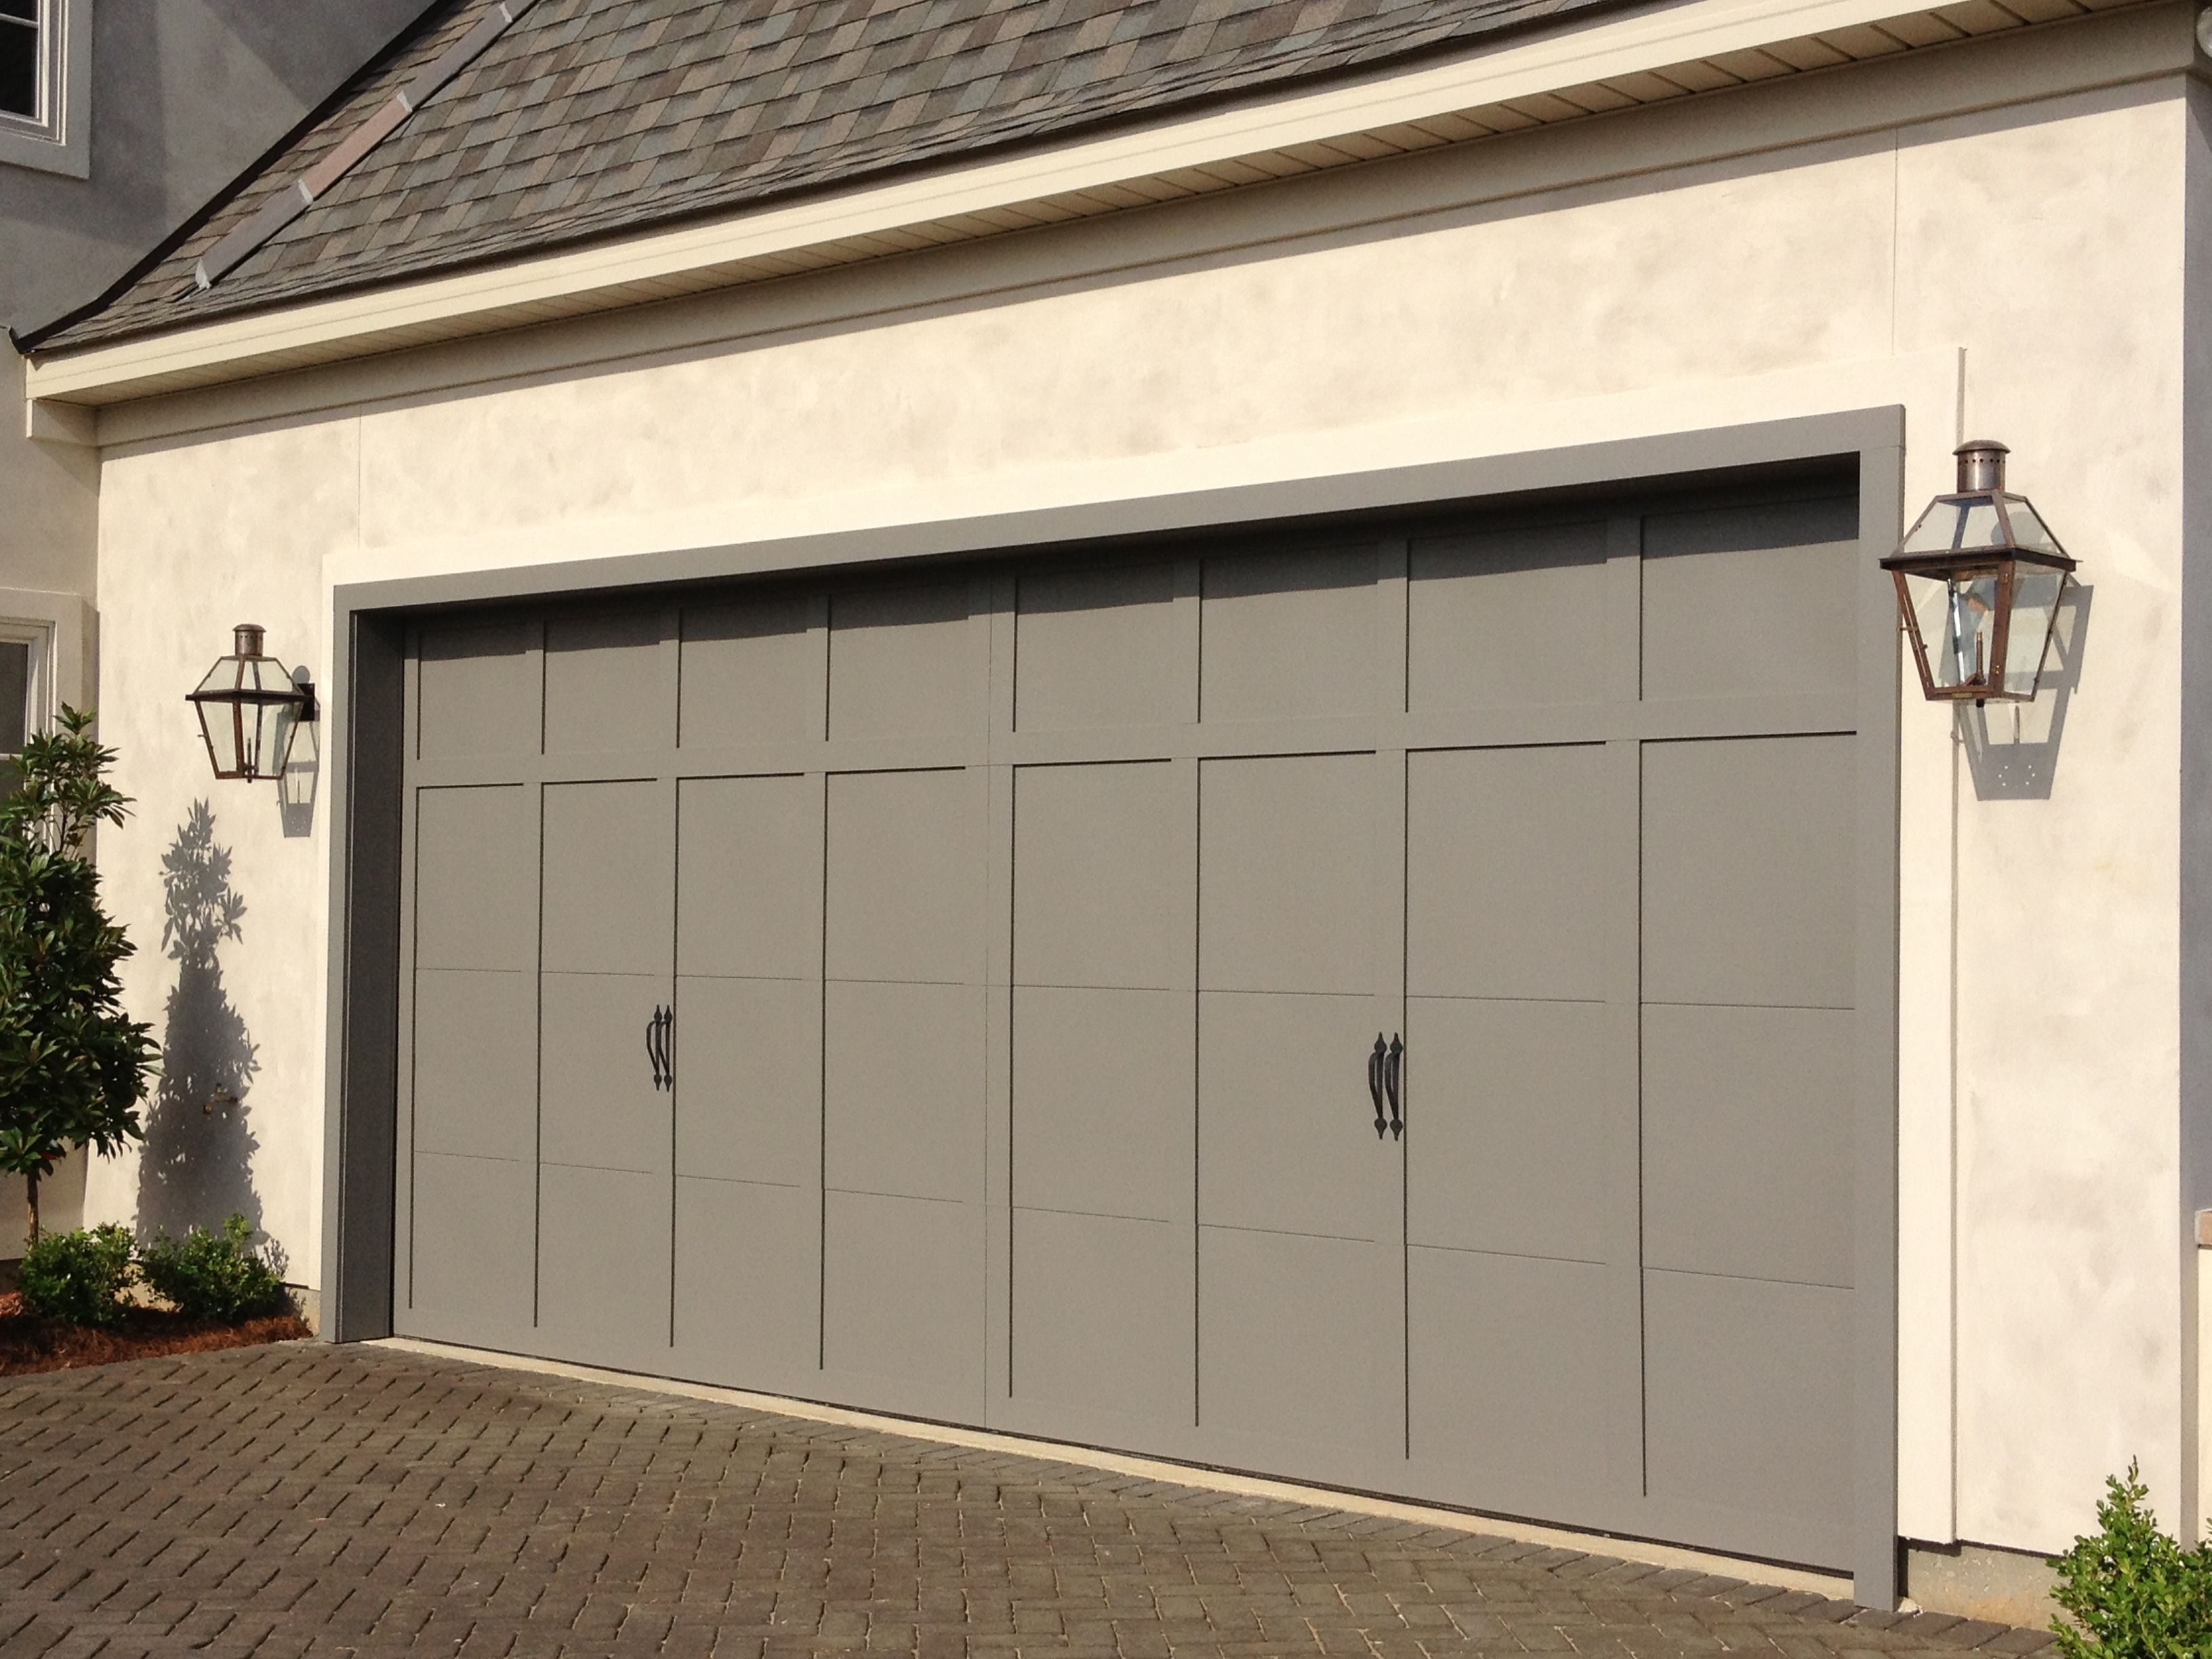 Pin By Bevolo On Exterior Lighting Garage Door Colors Garage Exterior Garage Doors